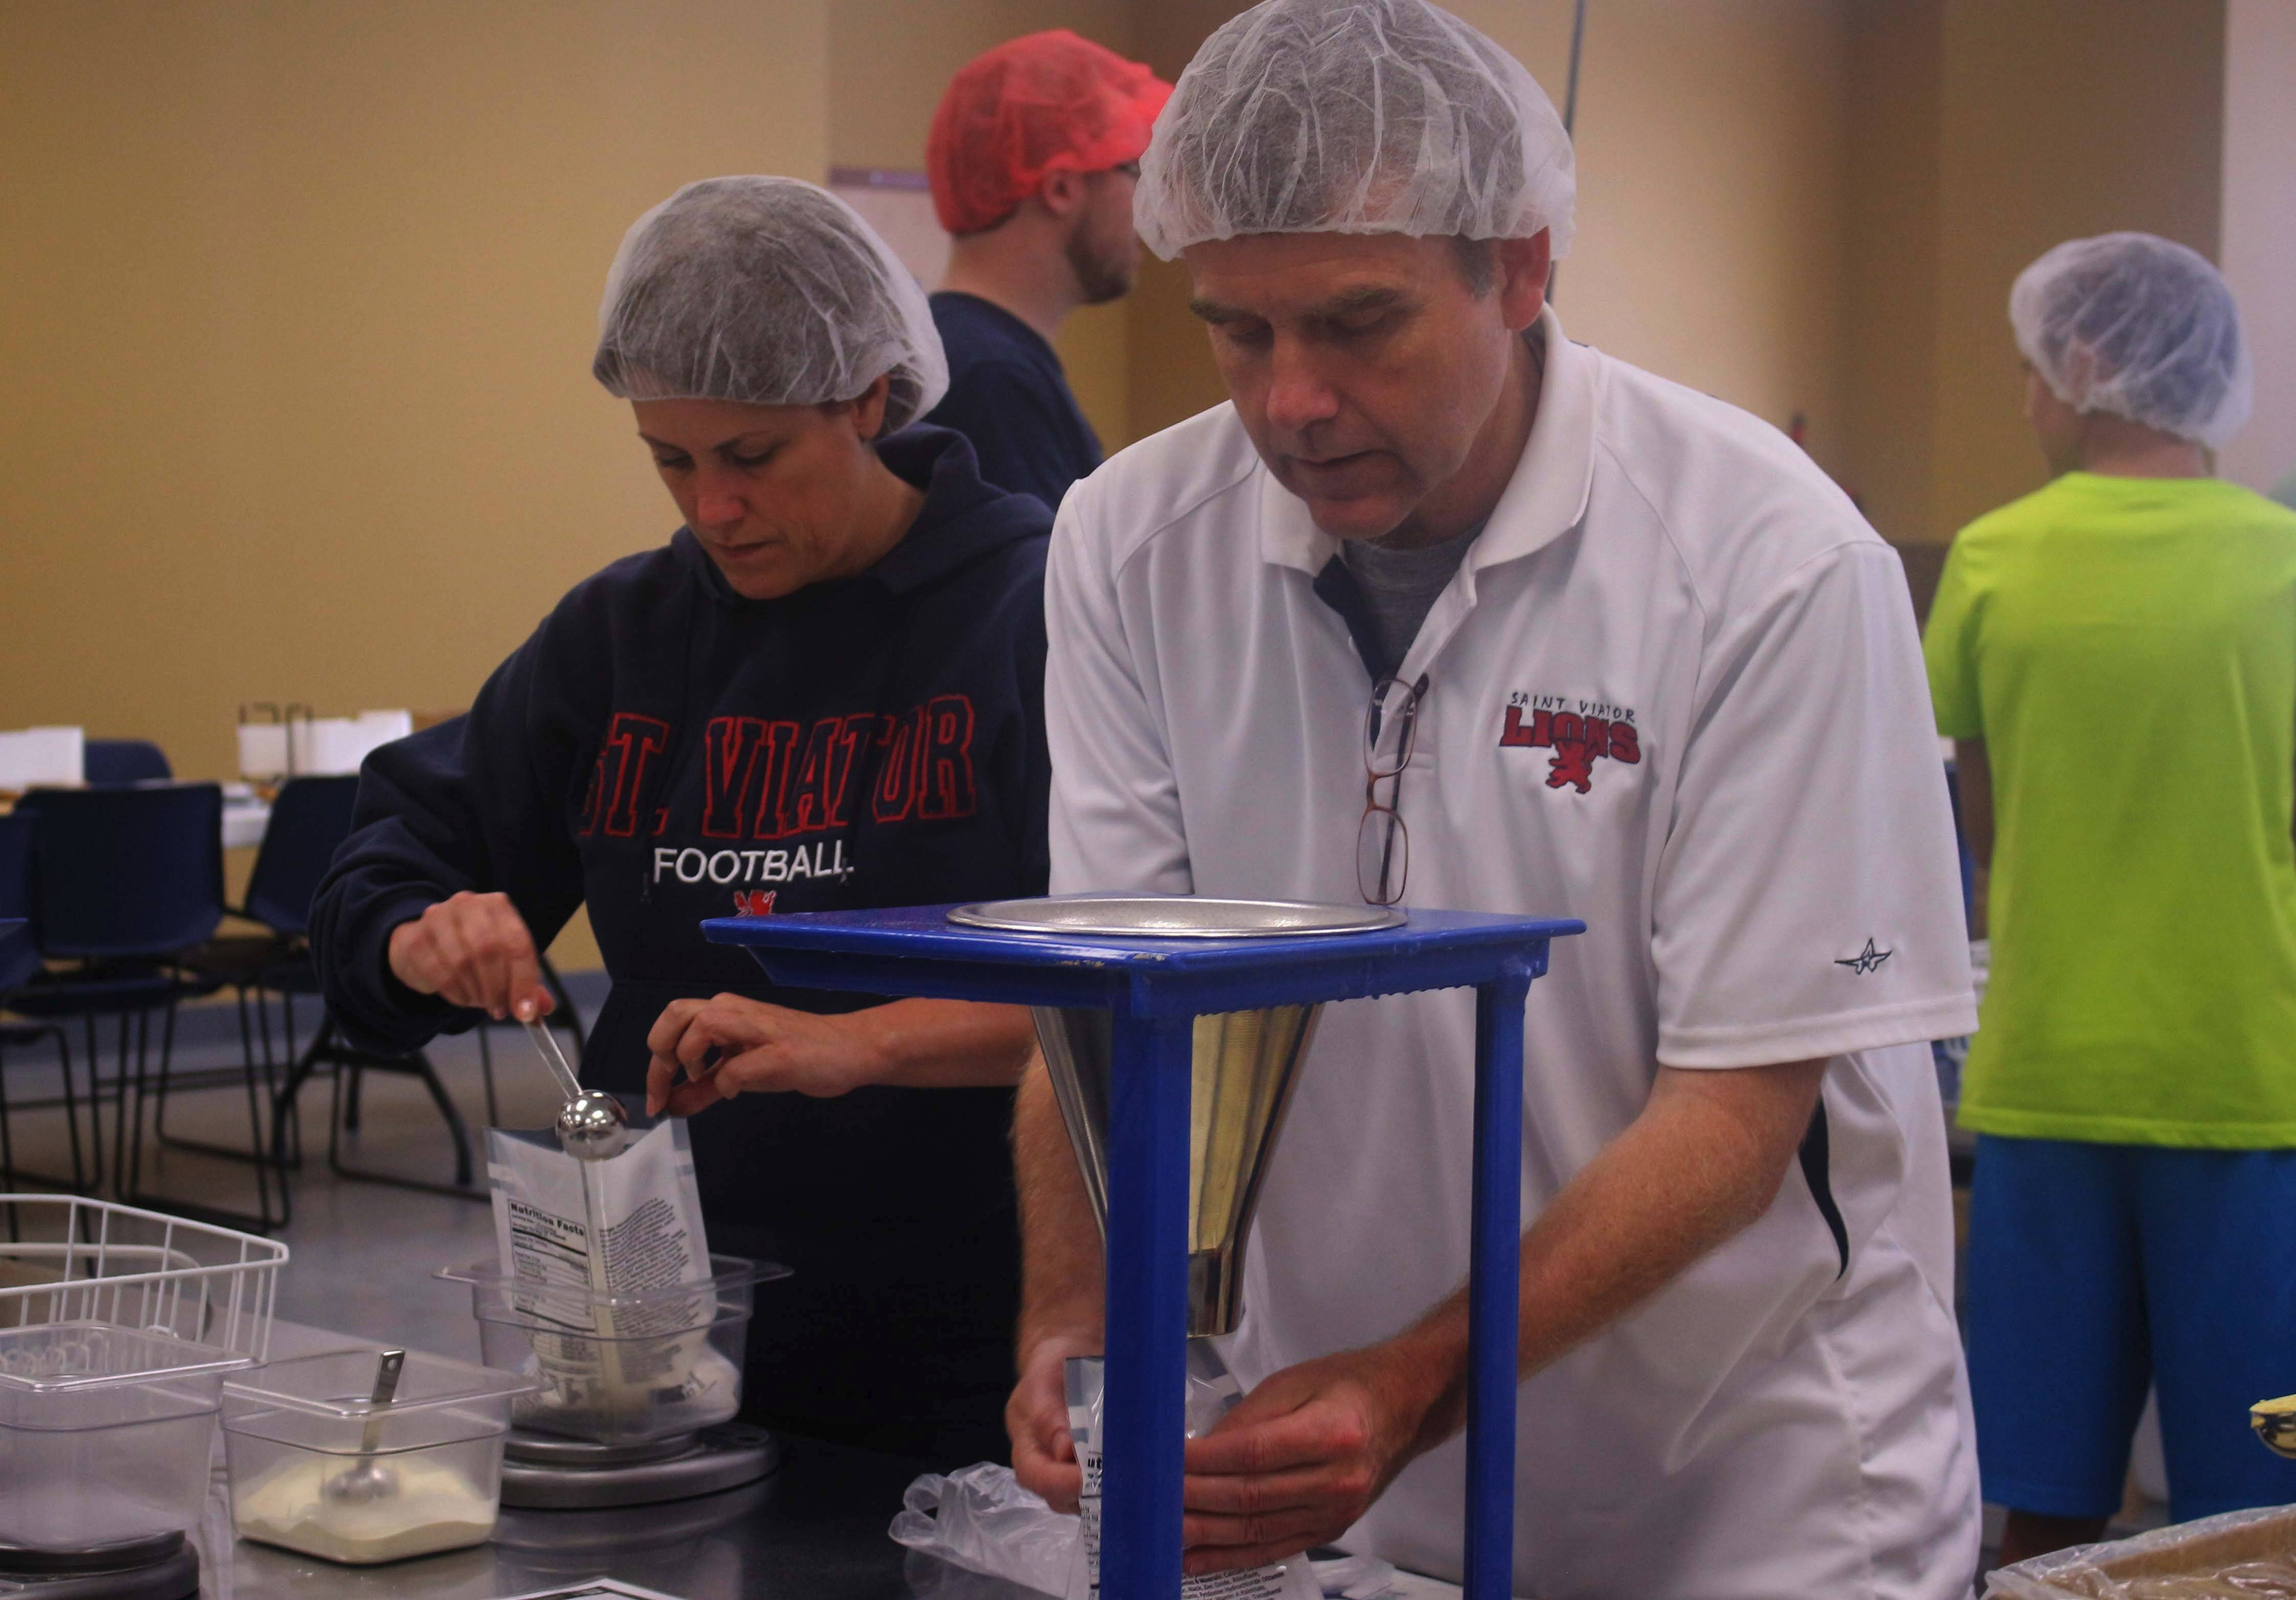 St. Viator High School President the Rev. Corey Brost worked alongside his students and staff.